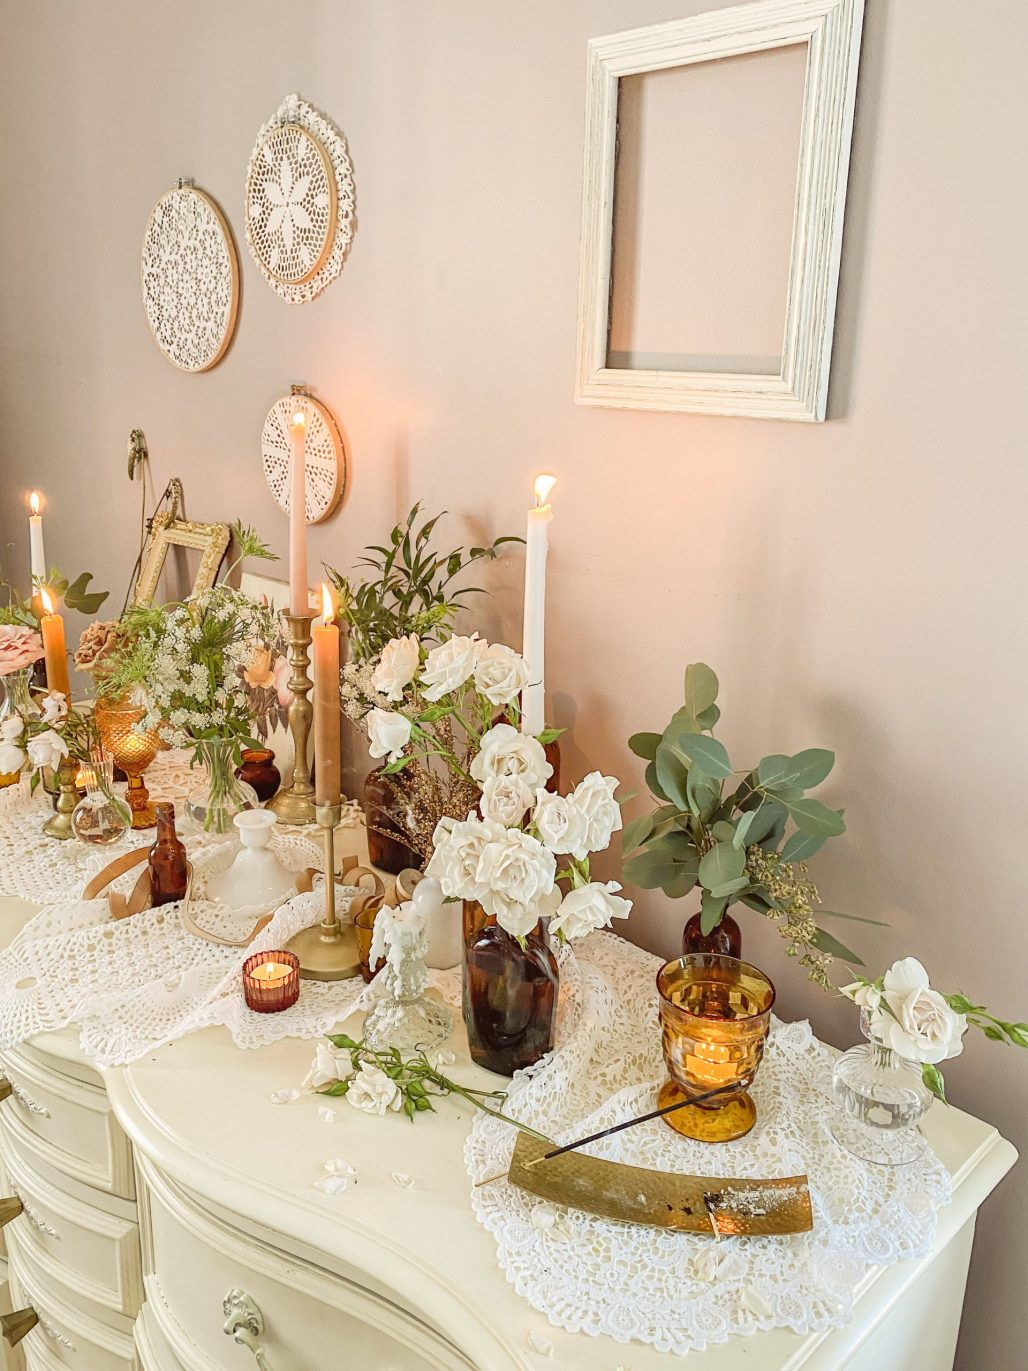 Amber is the Color of your Energy ... a Cottagecore Gathering for Love & Flowers || Dreamery Events